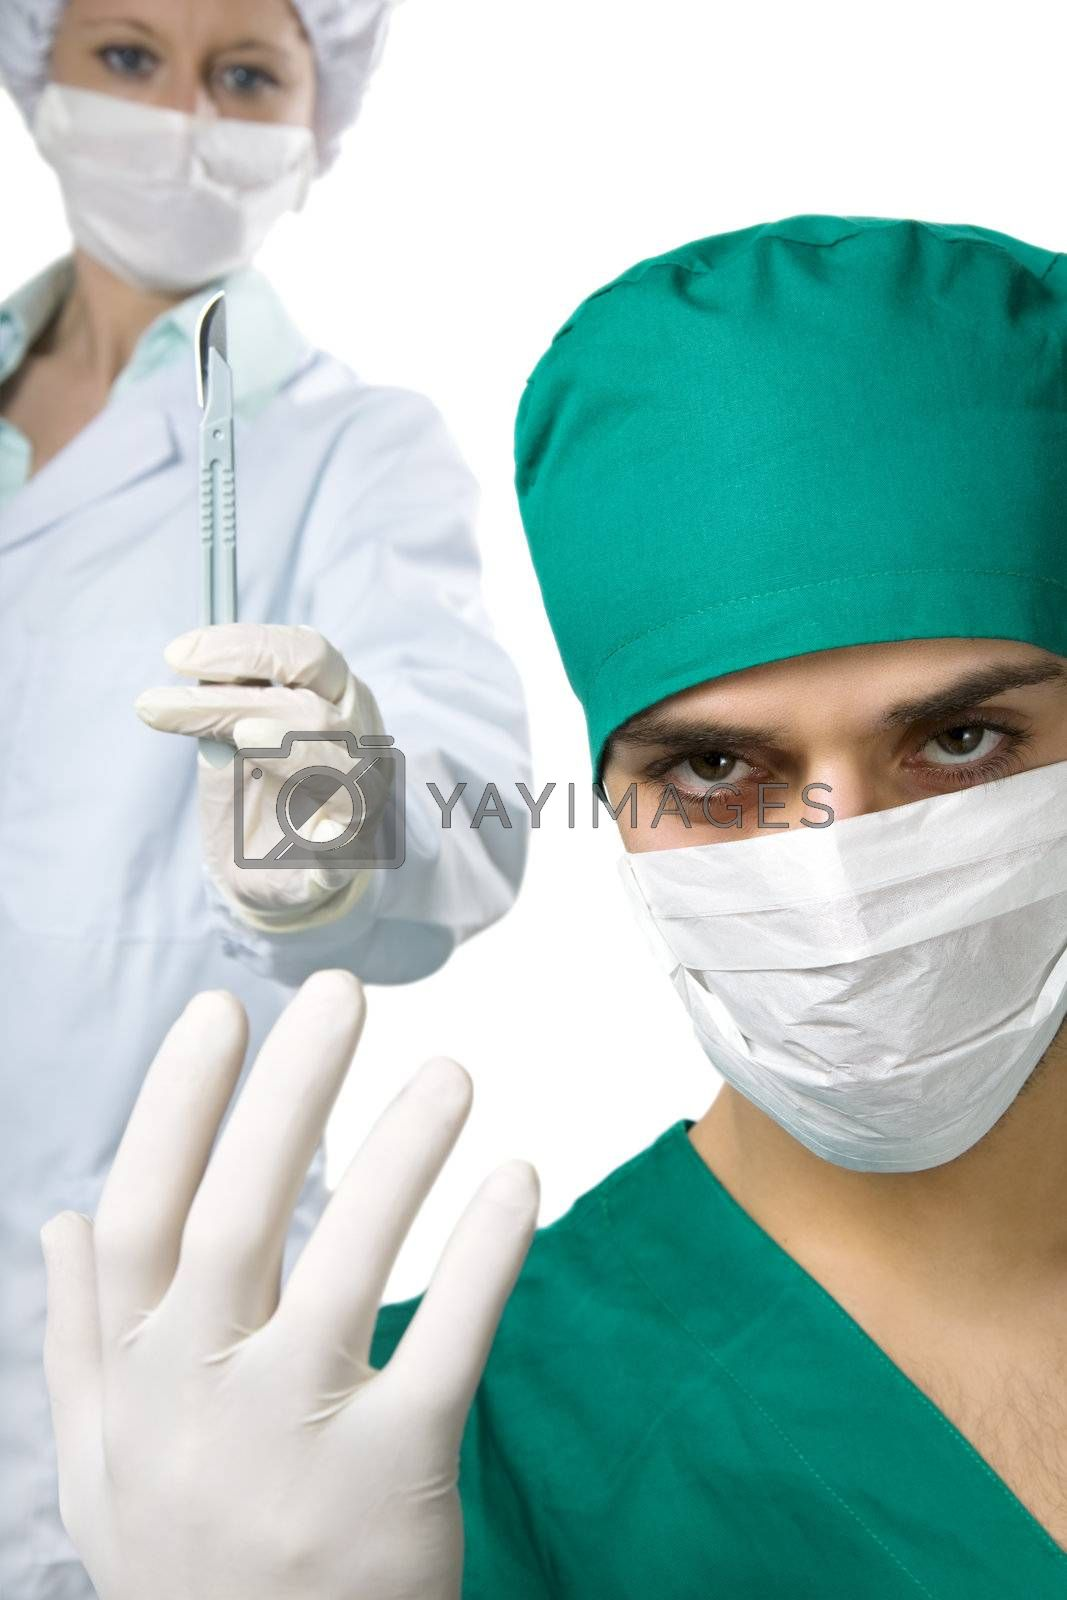 healthcare and medicine: surgeon and his staff during an operation